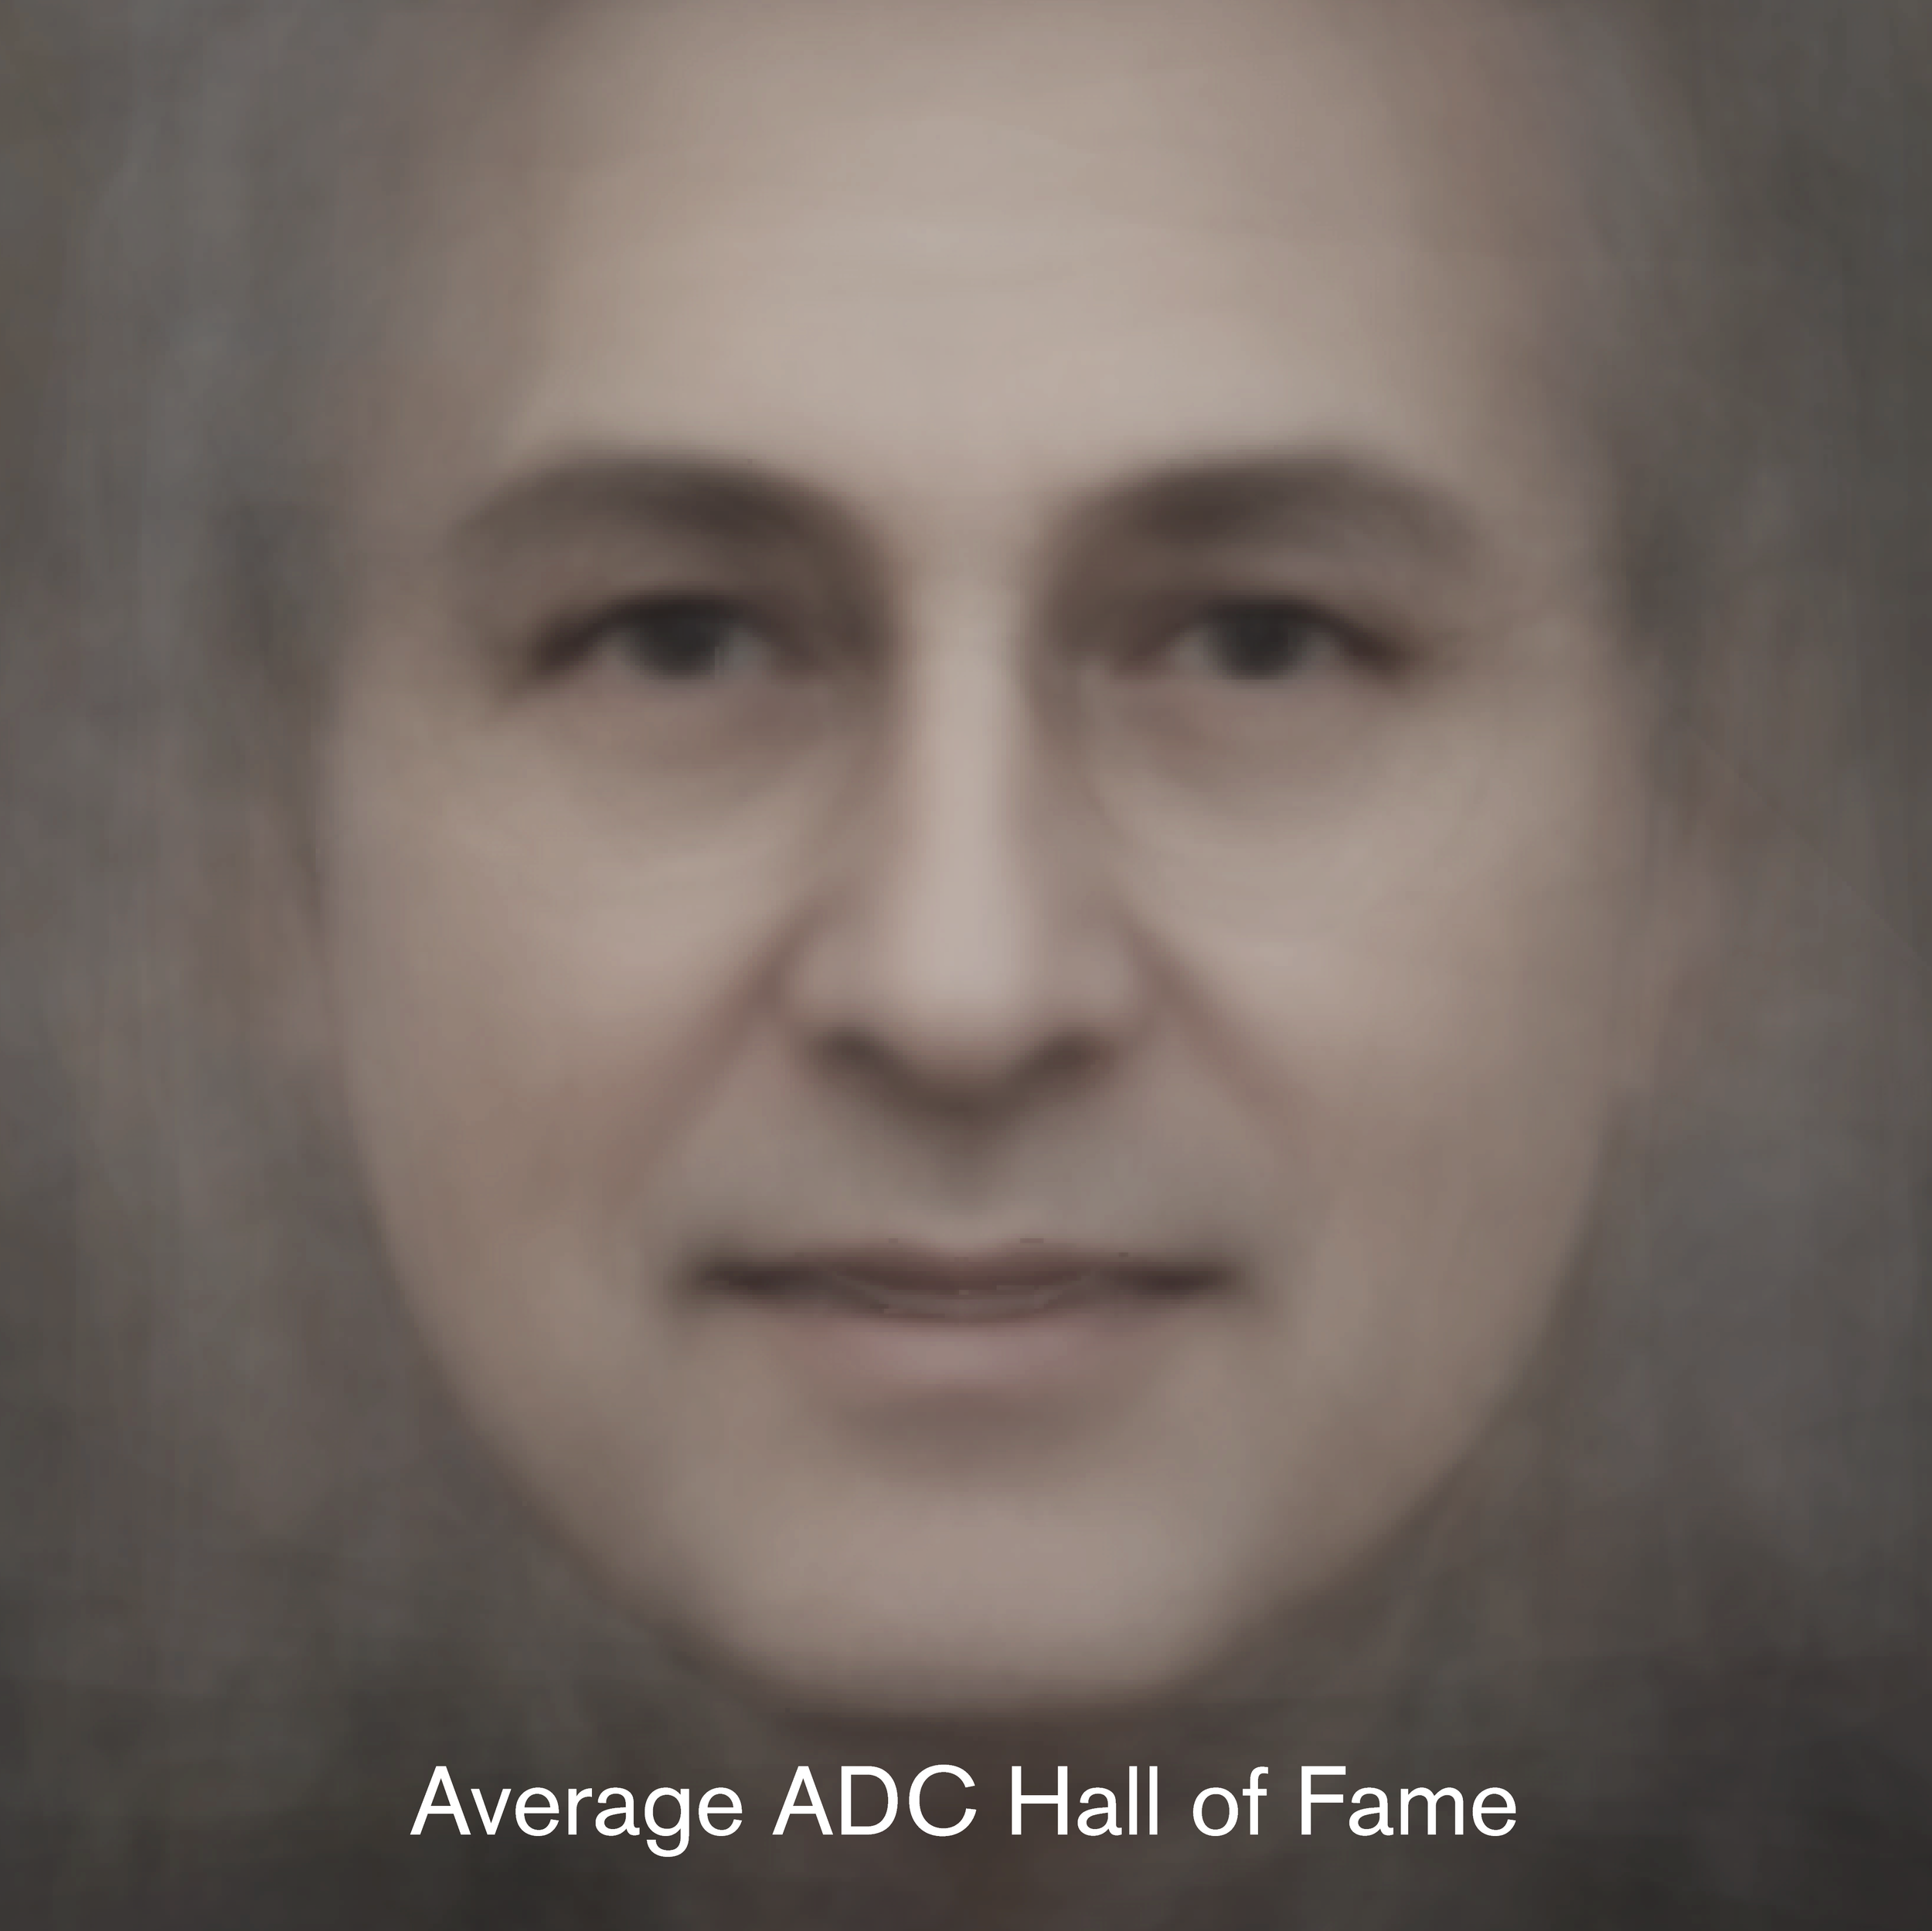 The source for this ADC Hall of Fame average image was pulled from http://adcglobal.org on October of 2018. It uses 118 front facing images from Hall of Fame. 51 images were not used due to low resoluttion or being being openCV compatible.